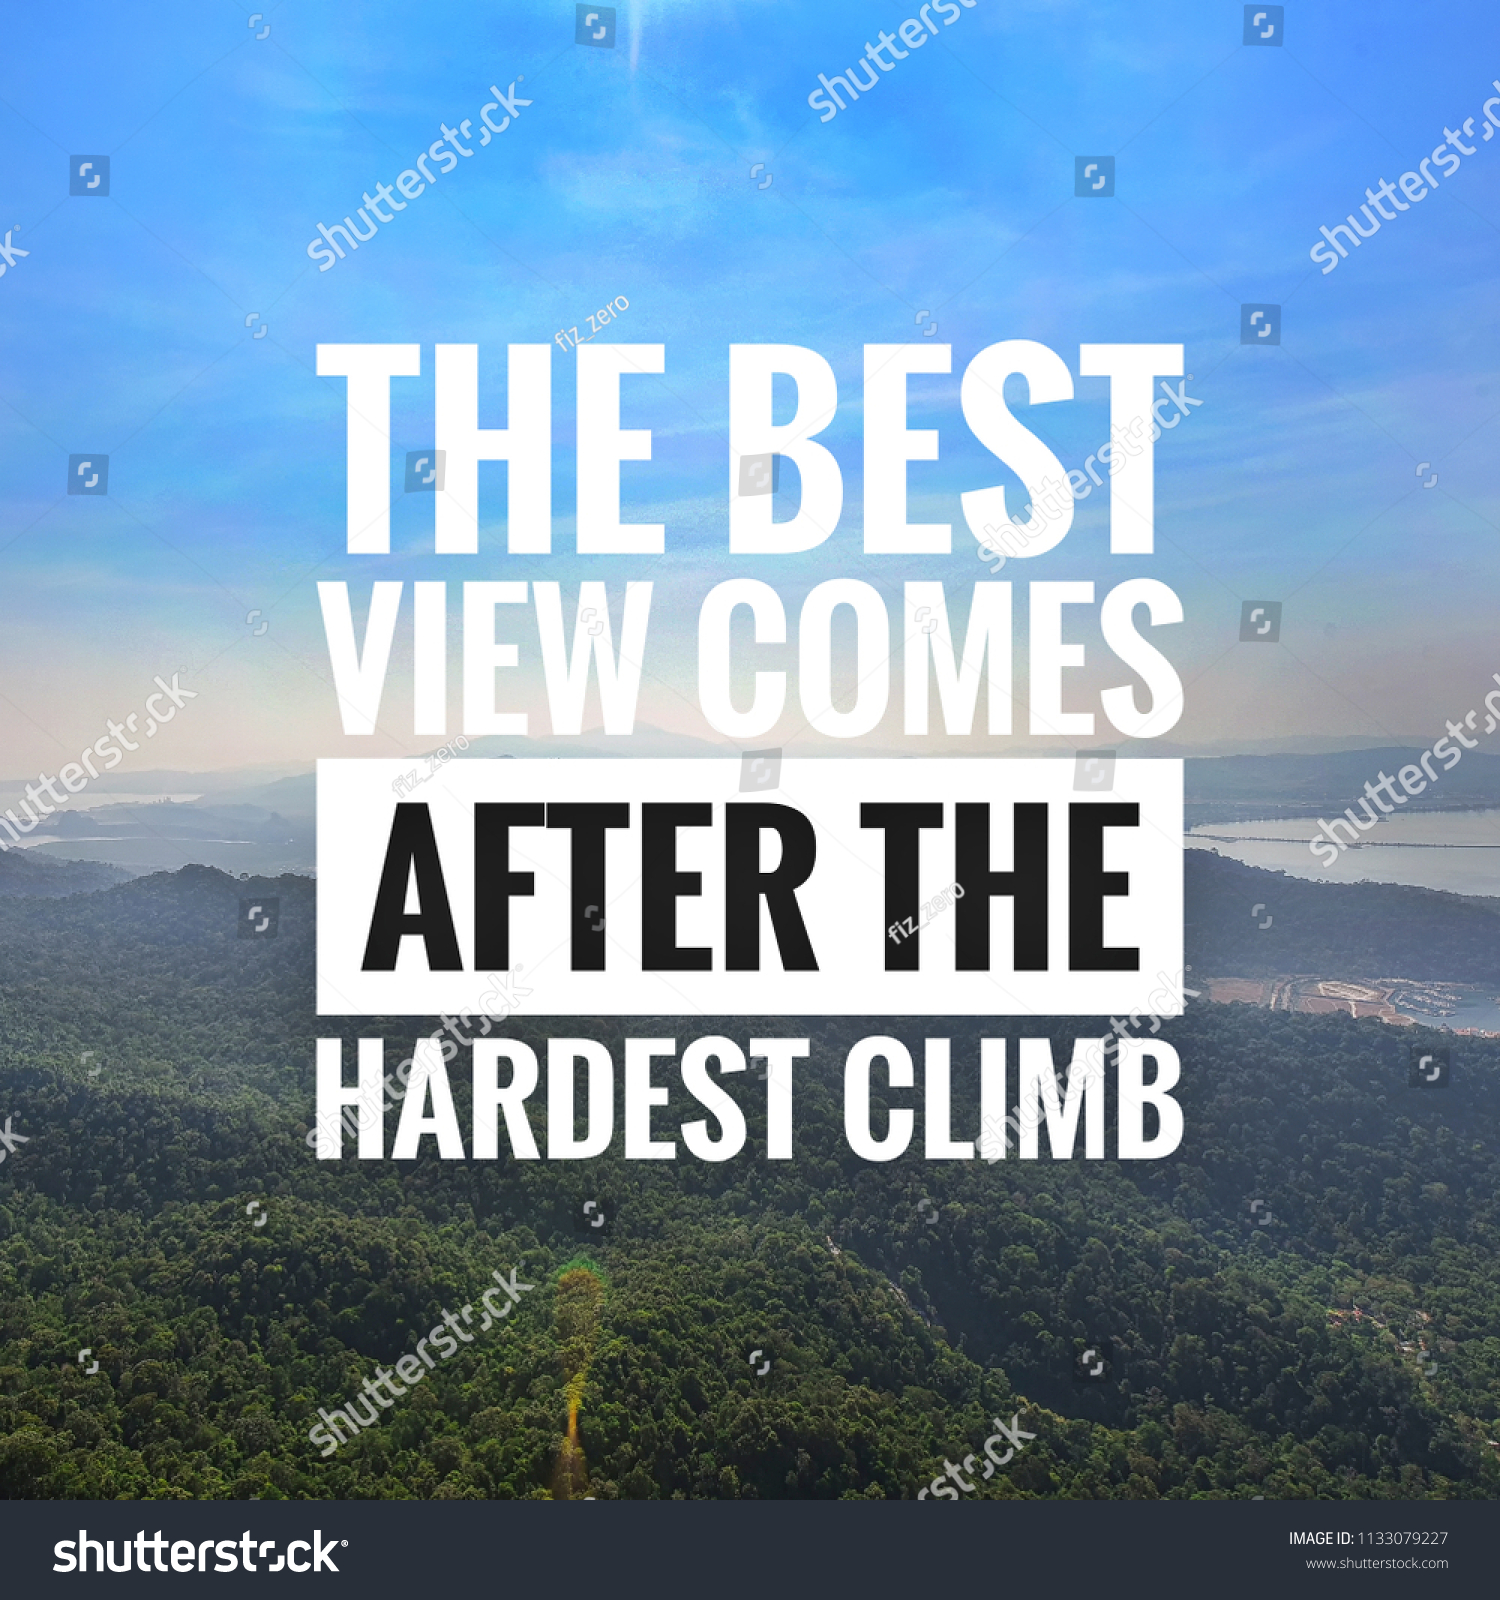 inspirational motivation quotes on blue sky stock photo edit now